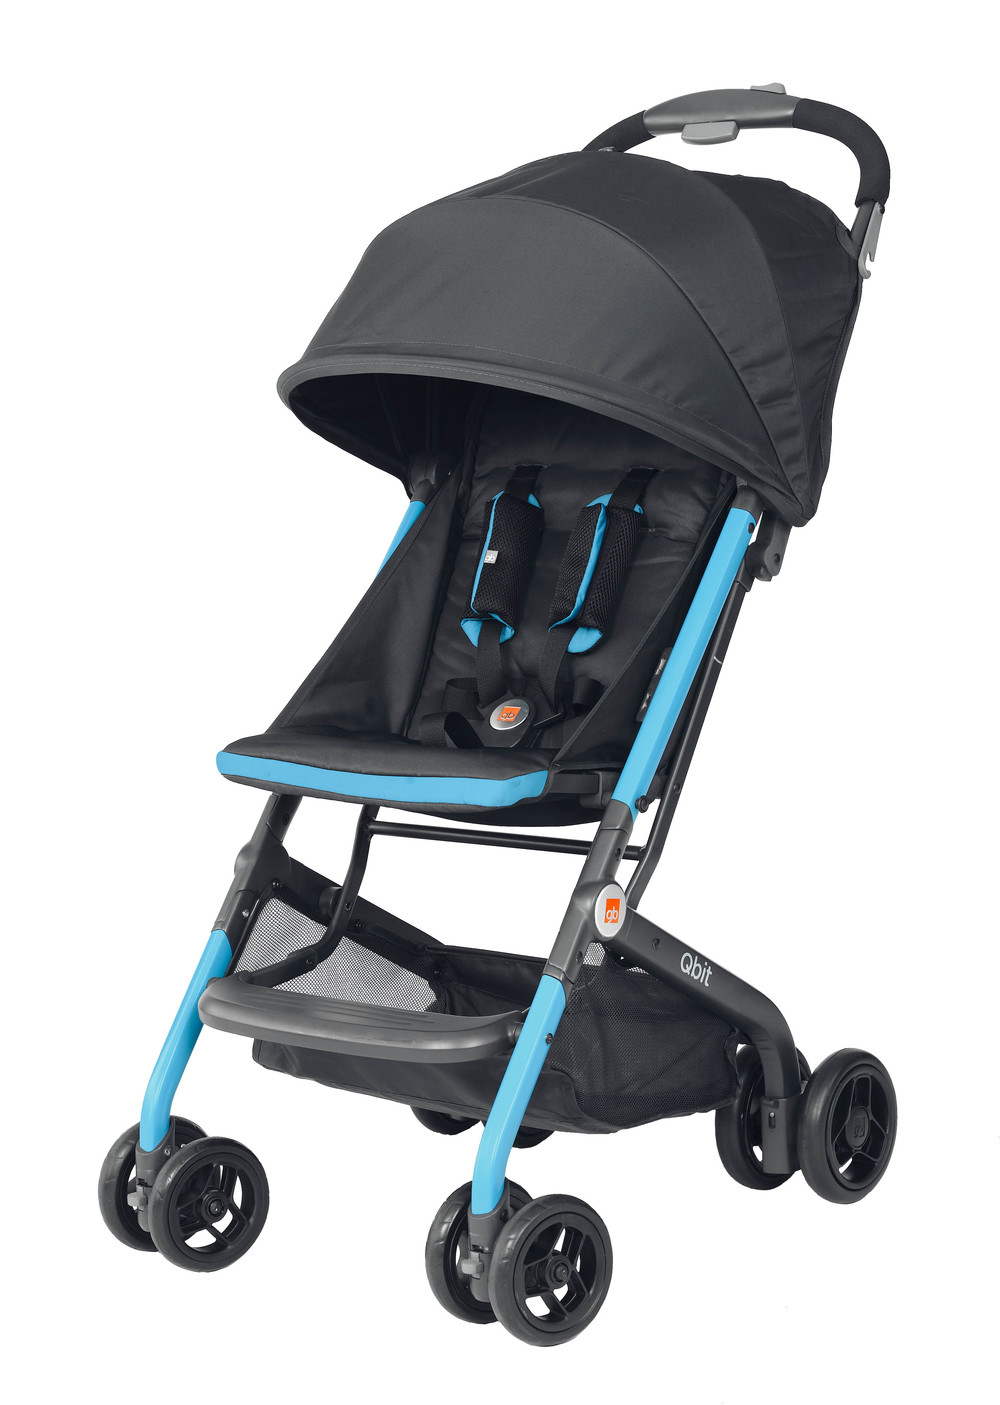 GBu0027s Qbit LTE - The Ultimate Lightweight Reclining Travel Stroller .  sc 1 st  Cheap Jogging Stroller Reviews & Reclining Travel Stroller Strollers 2017 islam-shia.org